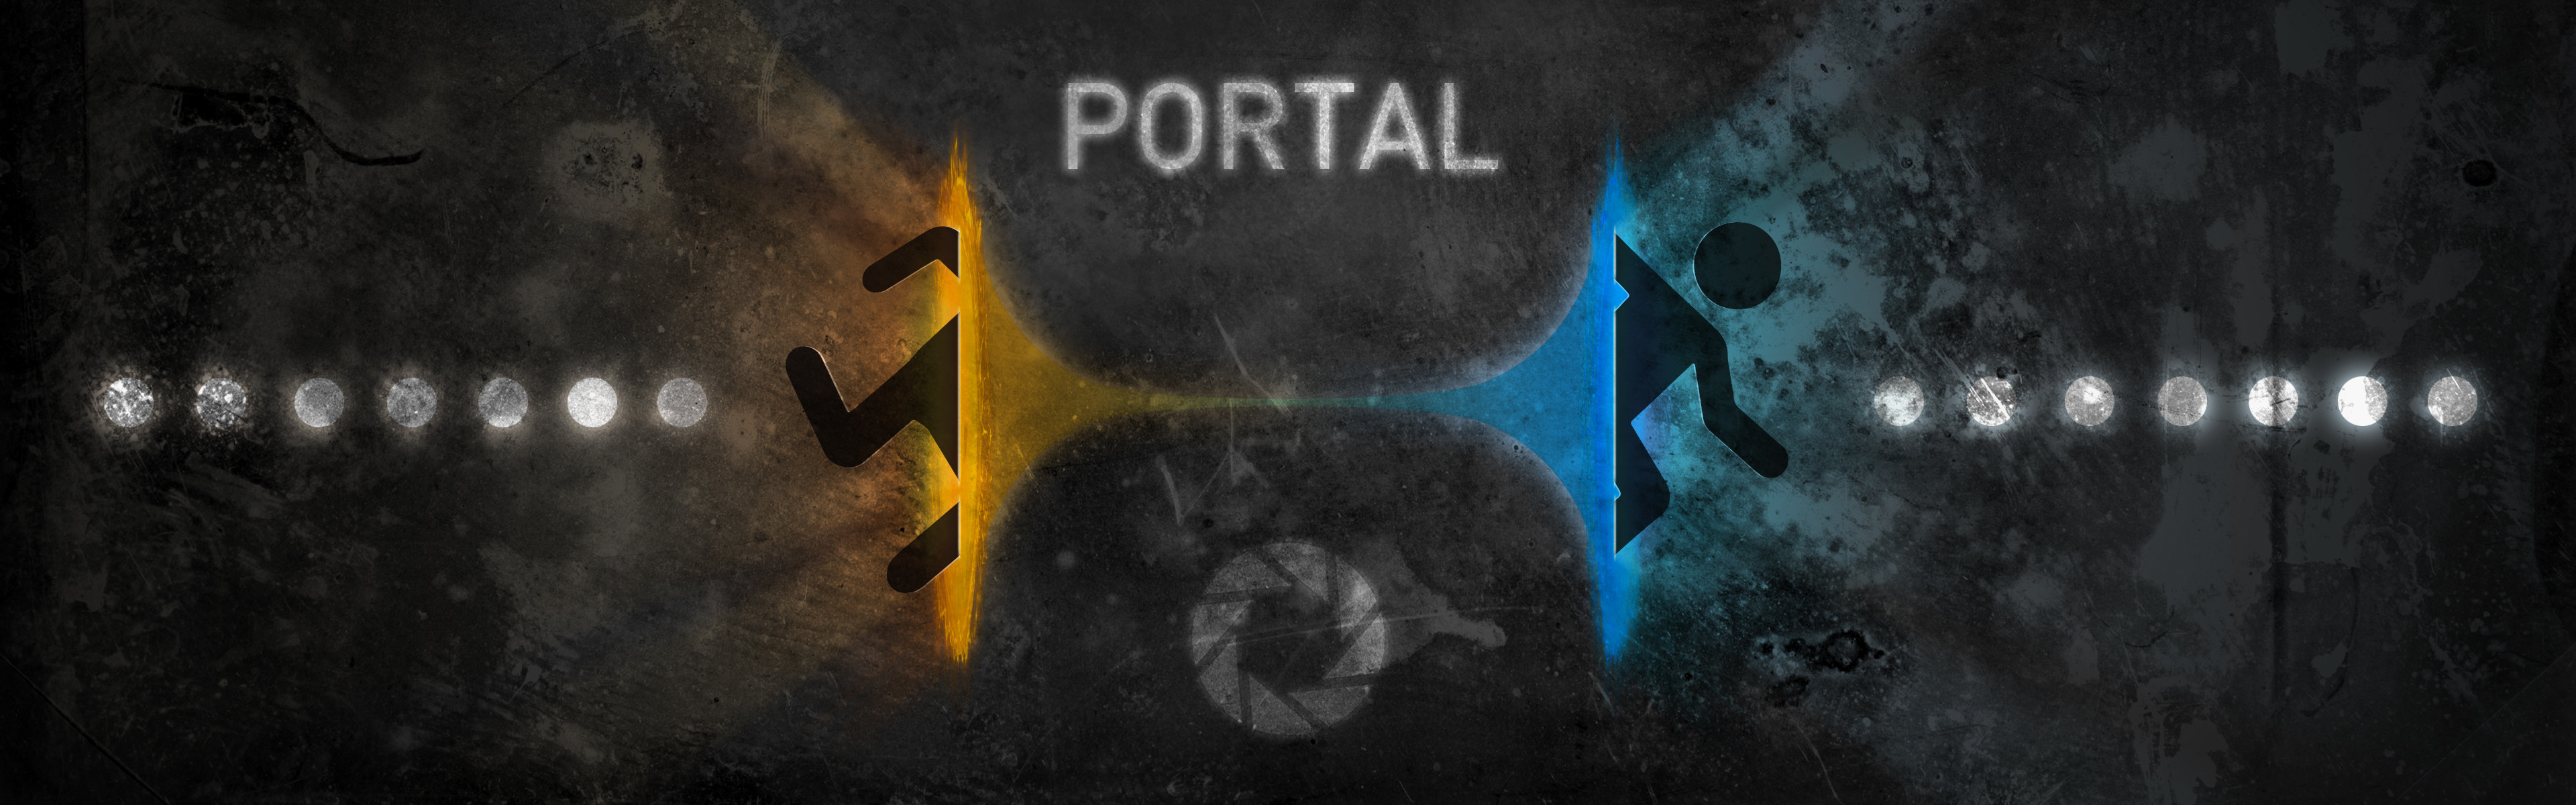 wallpapers, I thought I could create a Portal wallpaper for this .